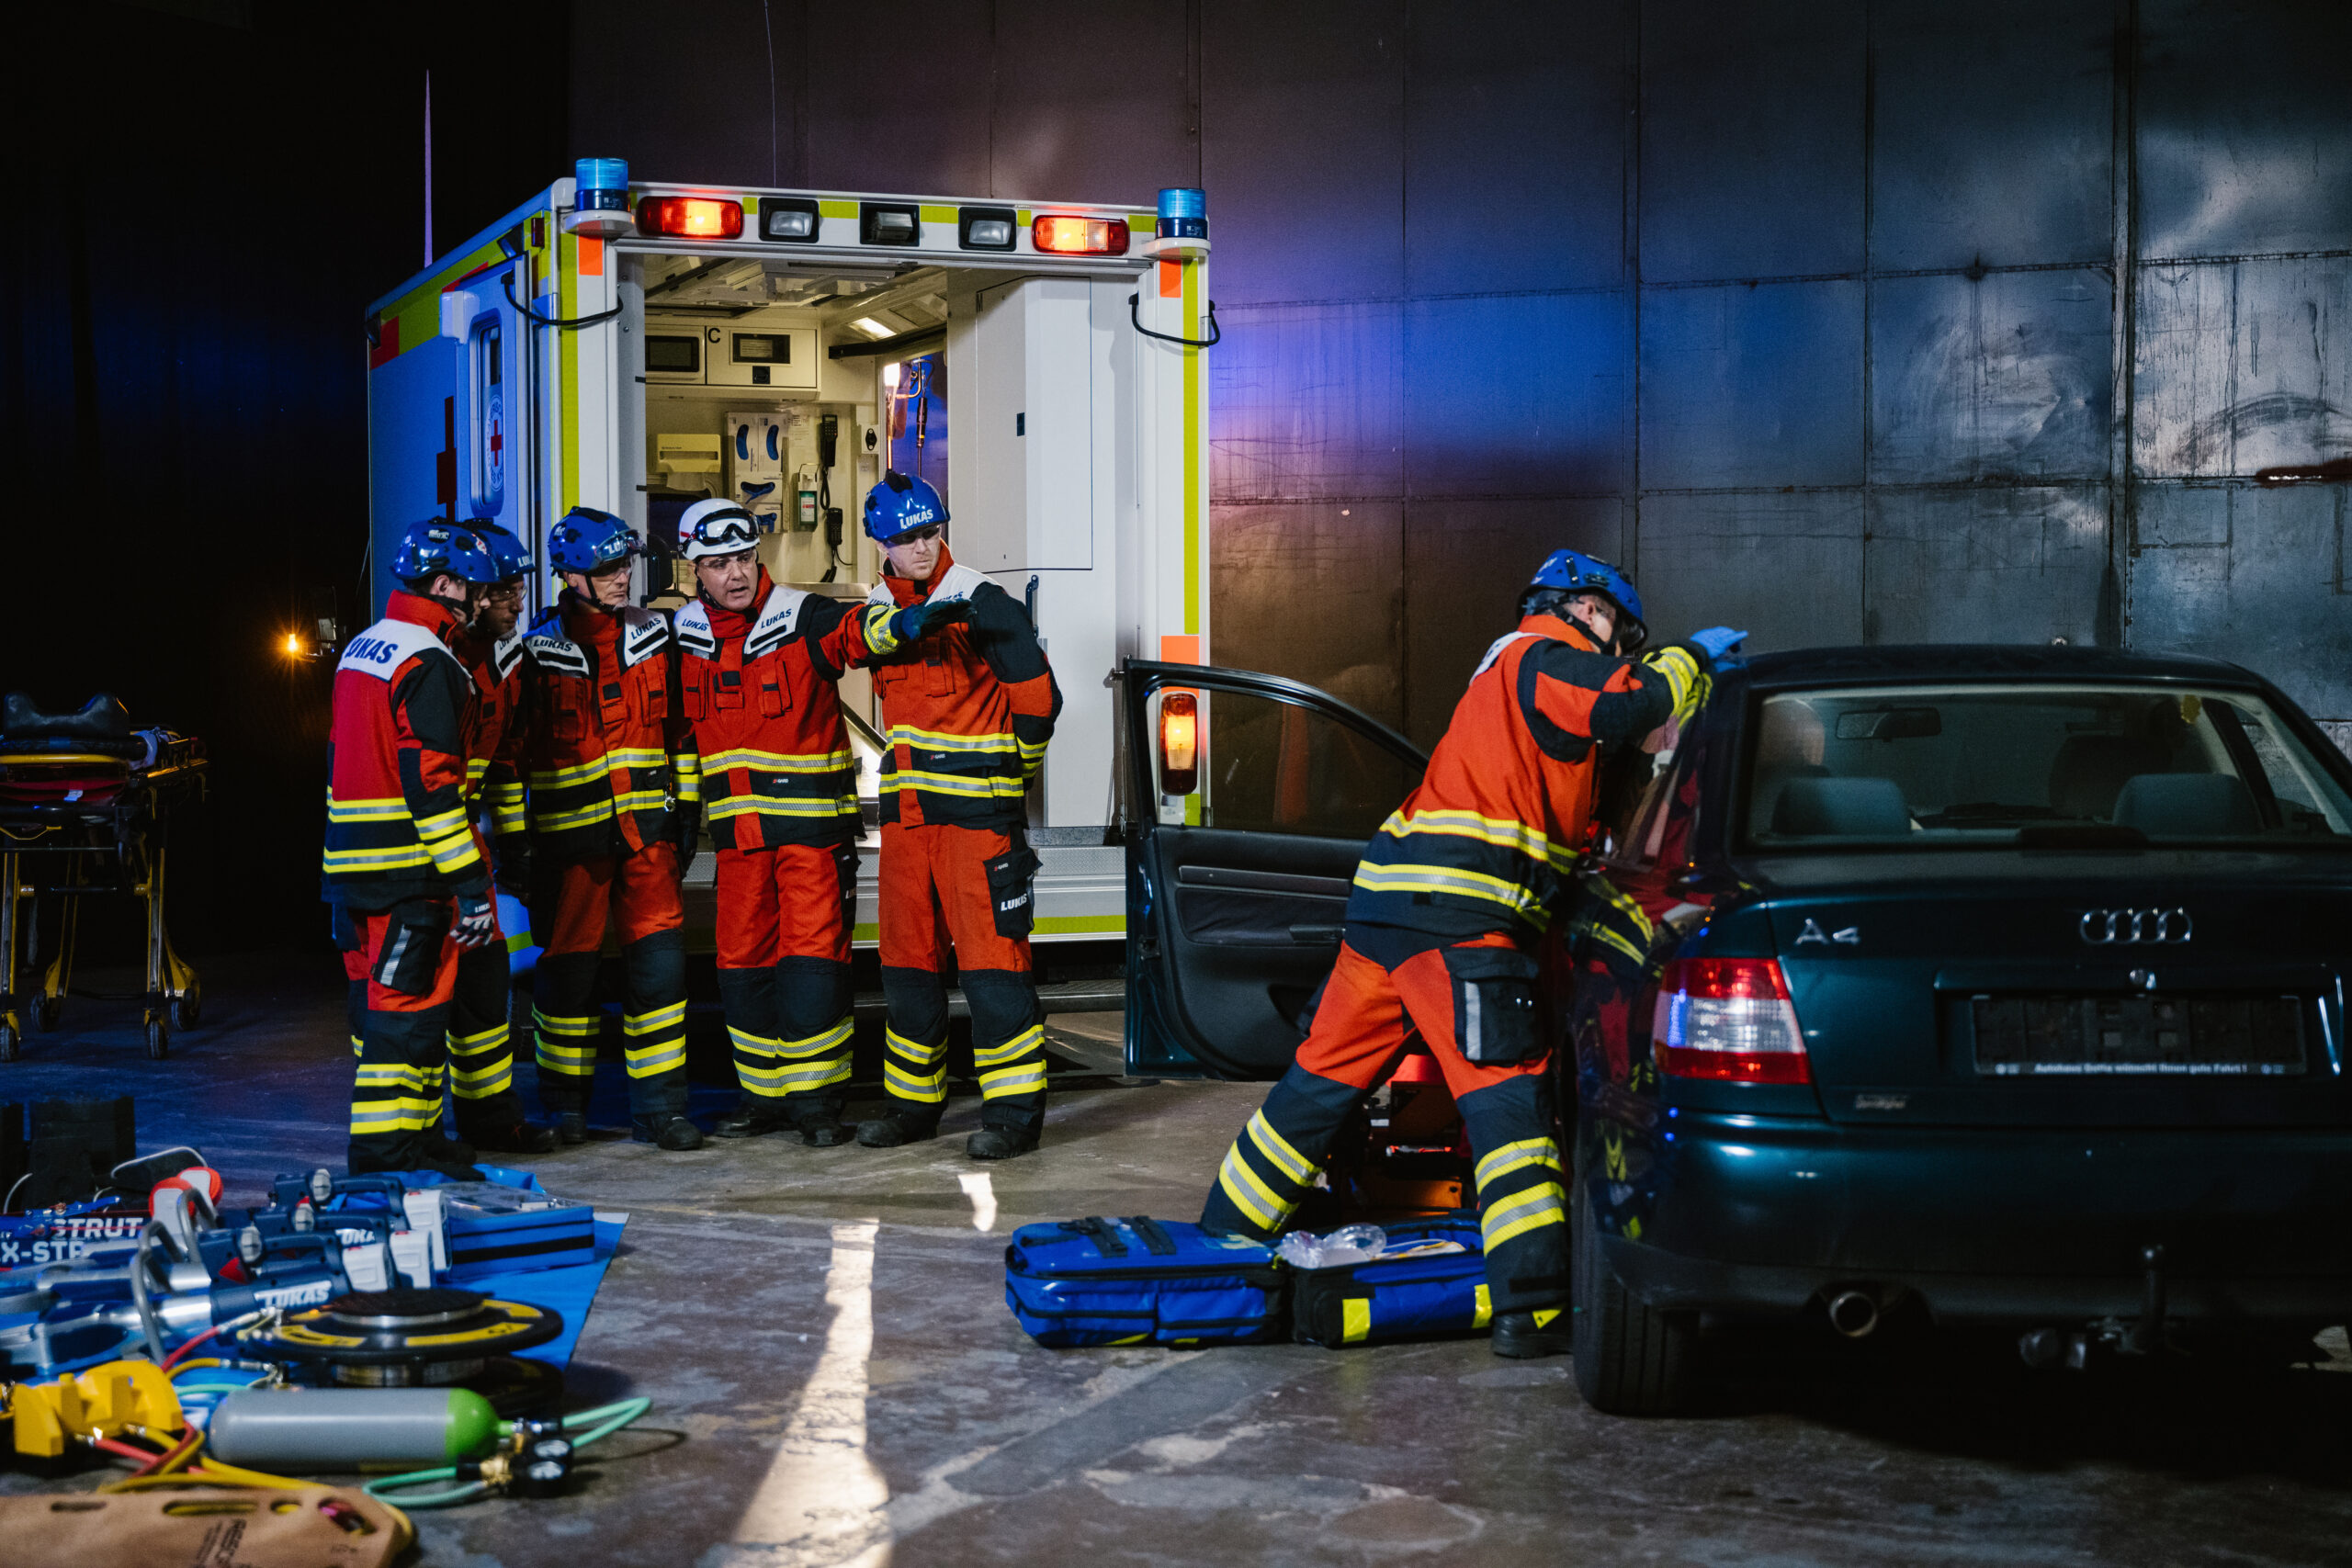 EXTRICATION PLANNING